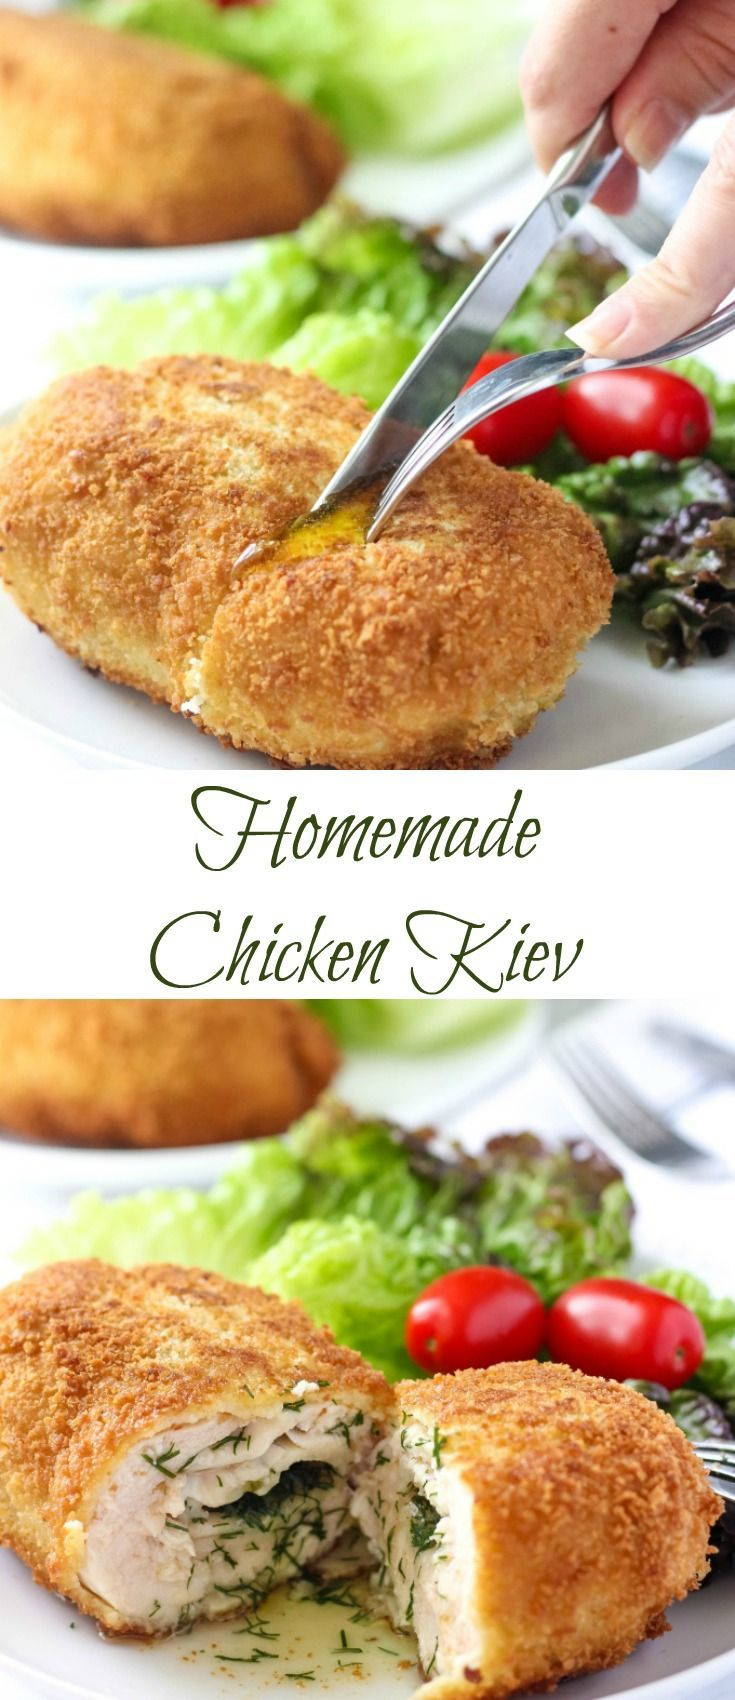 This is Easy Chicken Kiev Recipe. Follow step-by-step instructions to get the best Homemade Chicken Kiev.